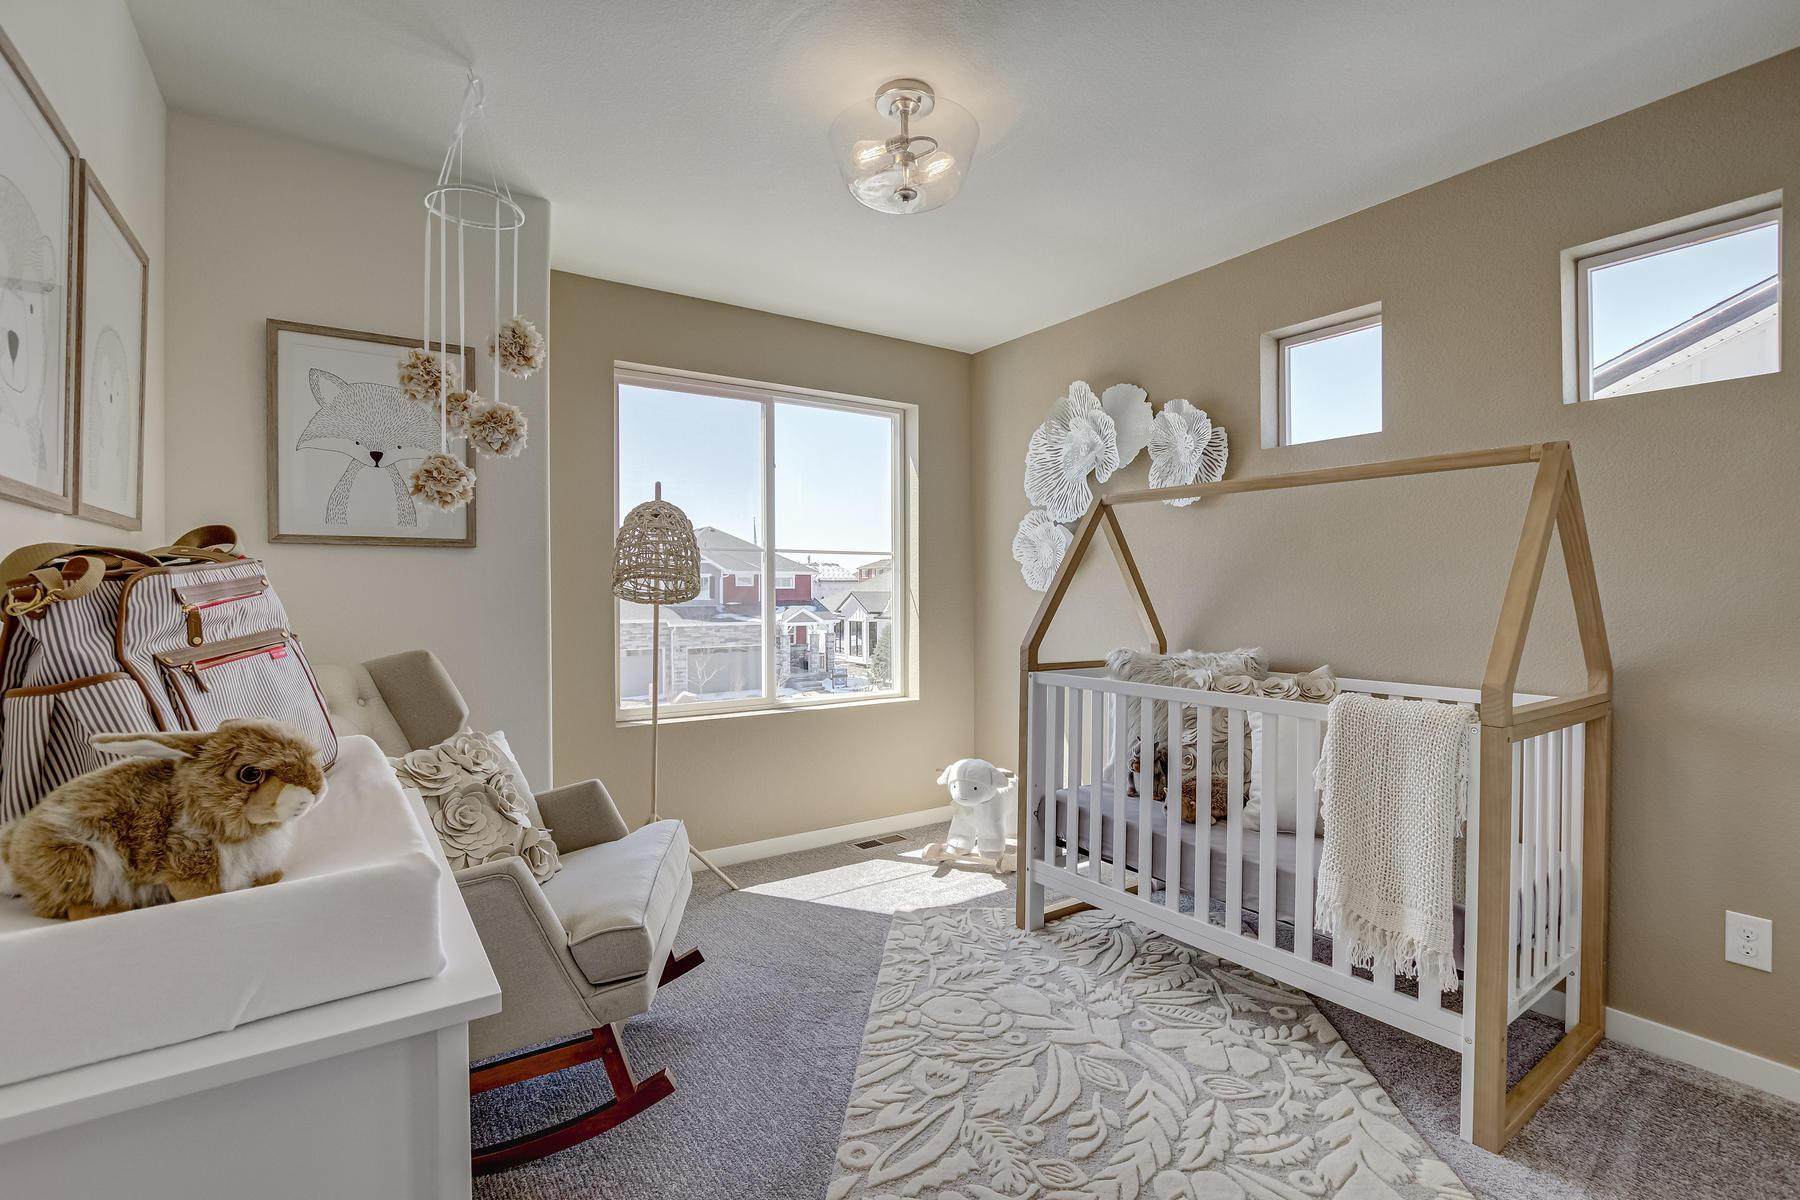 Bedroom featured in the  Branson  By Oakwood Homes in Denver, CO